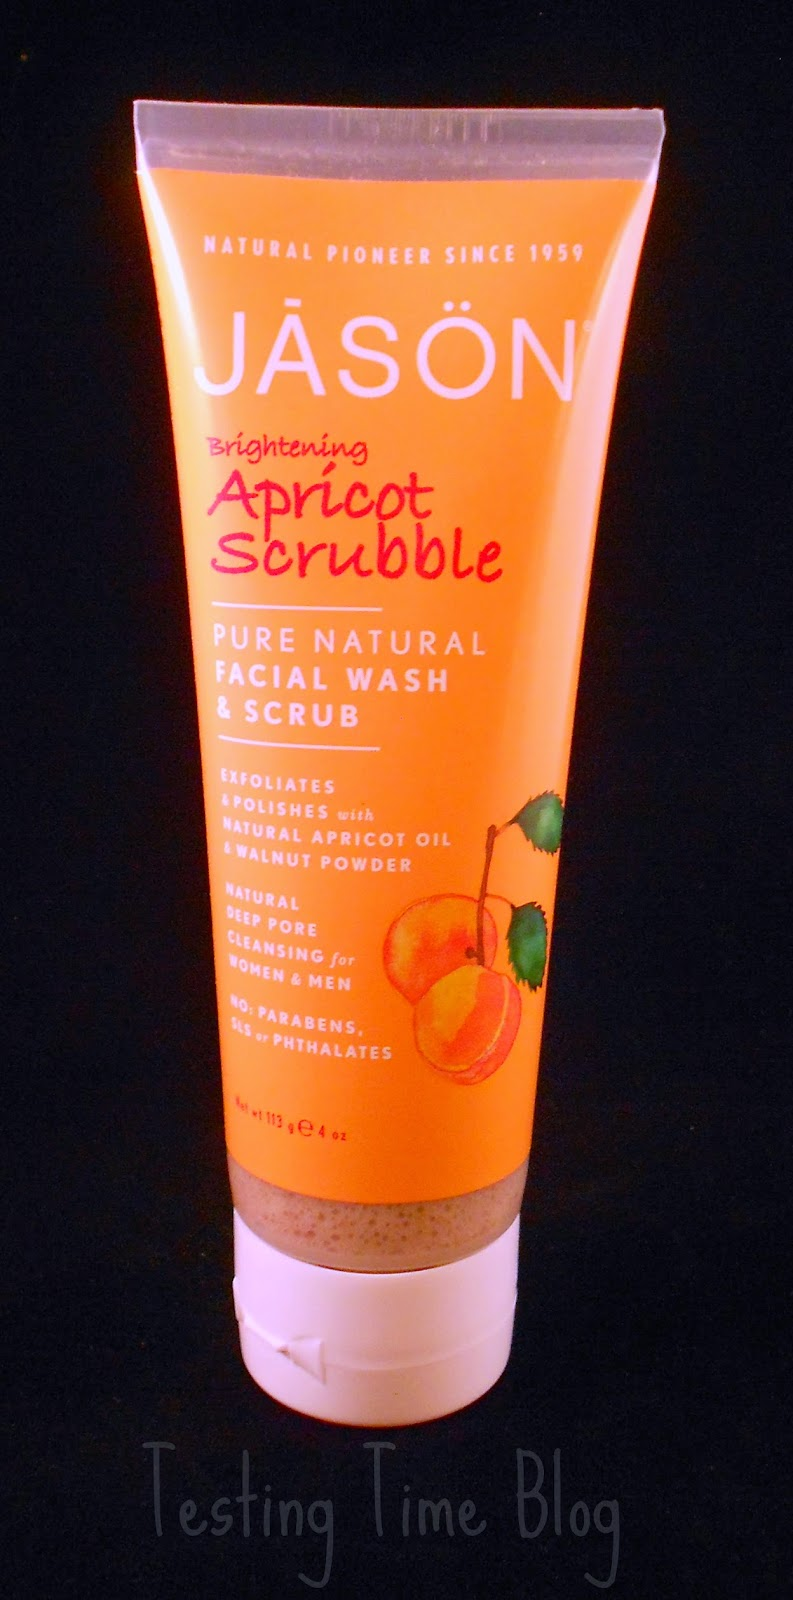 Love Lula Box Jason Apricot Scrubble Pure Natural Facial Wash & Scrub